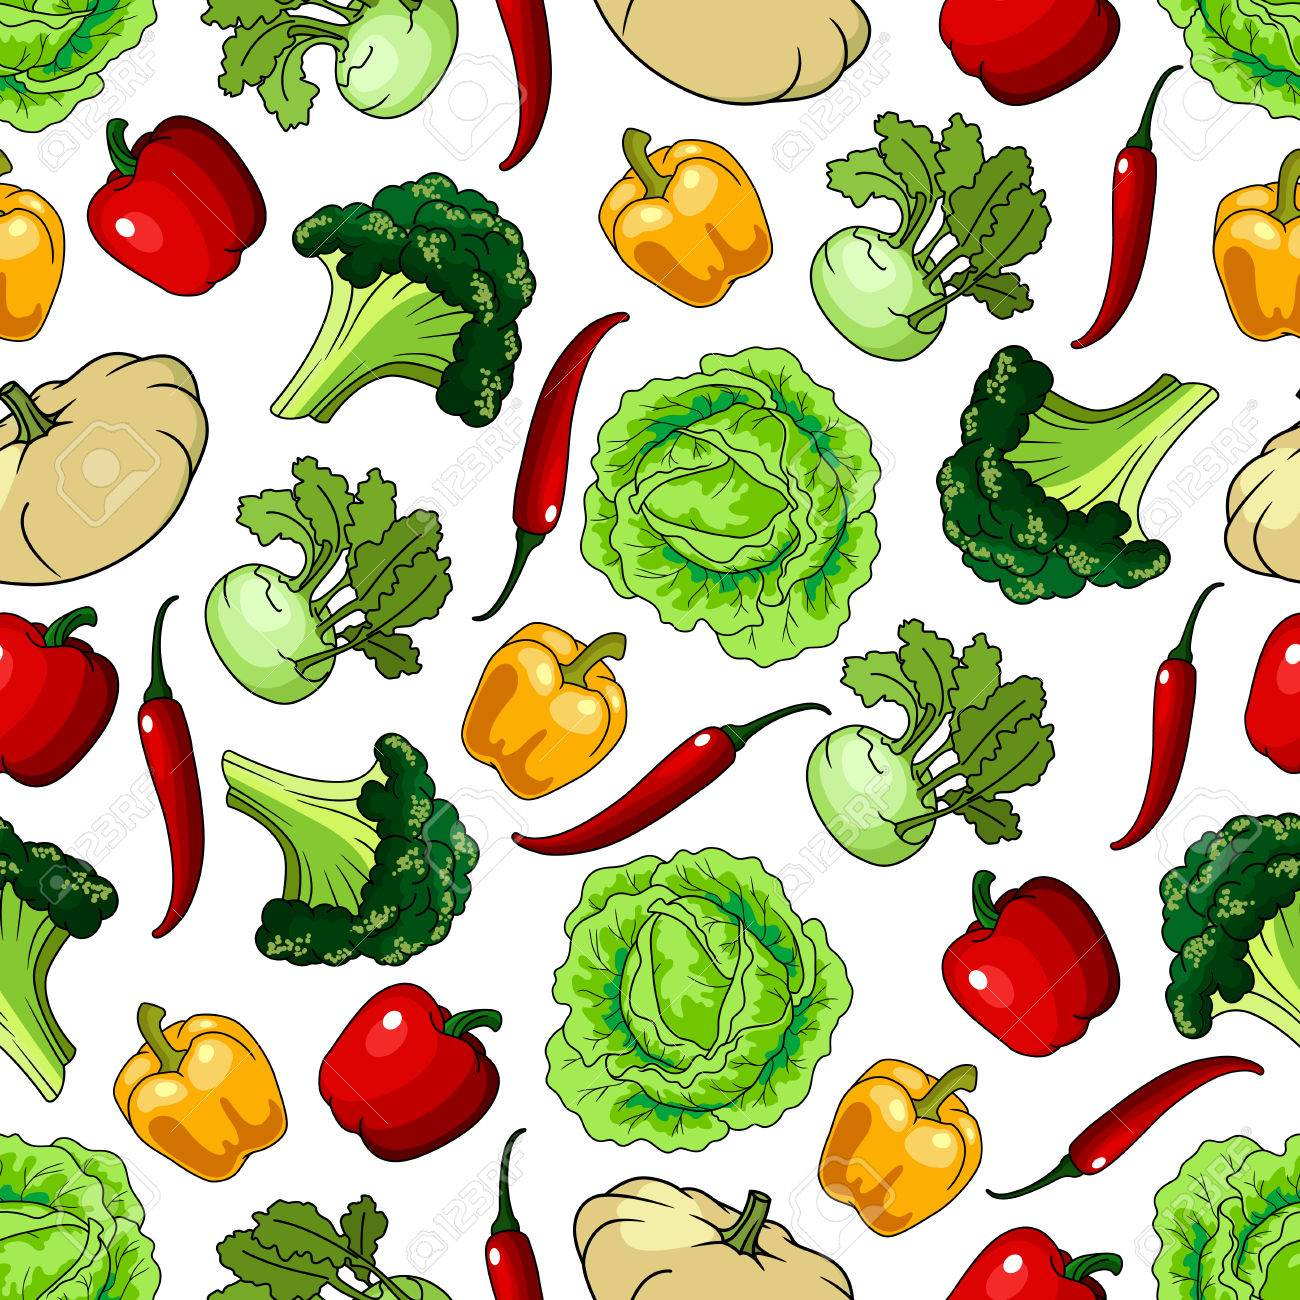 Vegetables Seamless Background Wallpaper With Pattern Of Fresh Royalty Free Cliparts Vectors And Stock Illustration Image 62637301